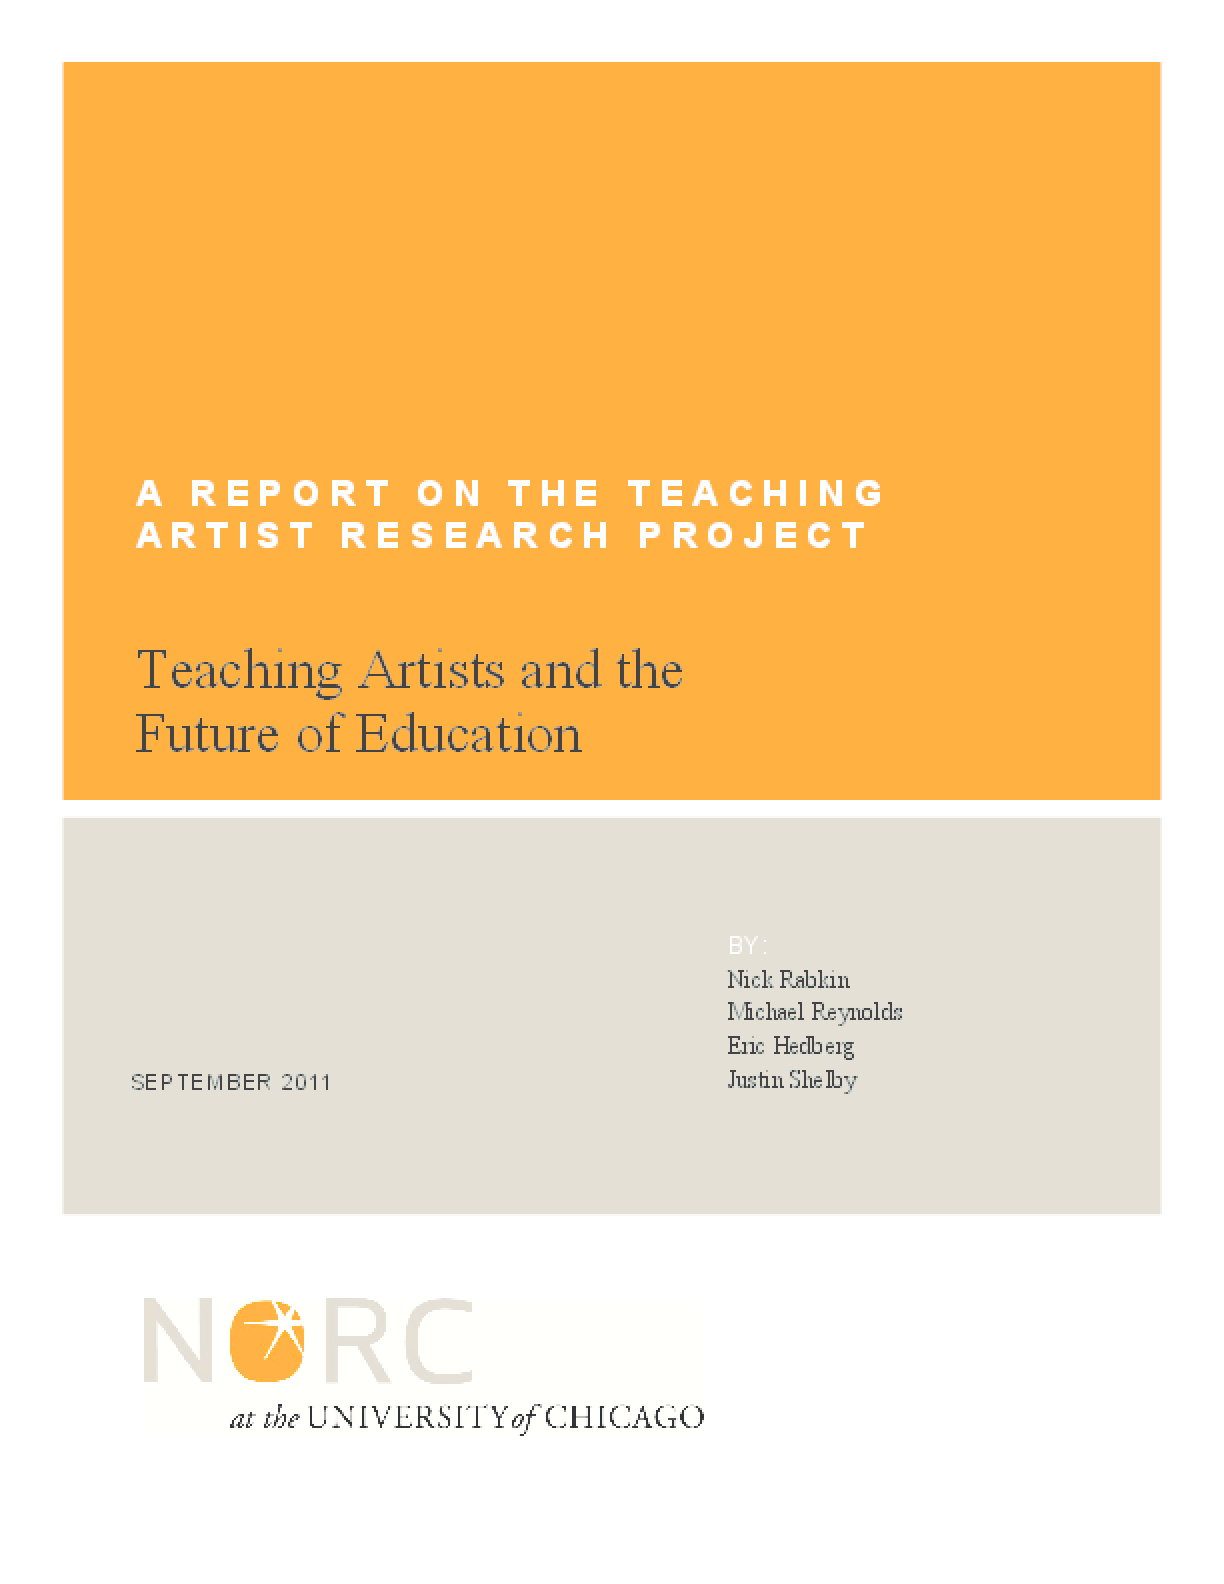 Teaching Artists Research Project